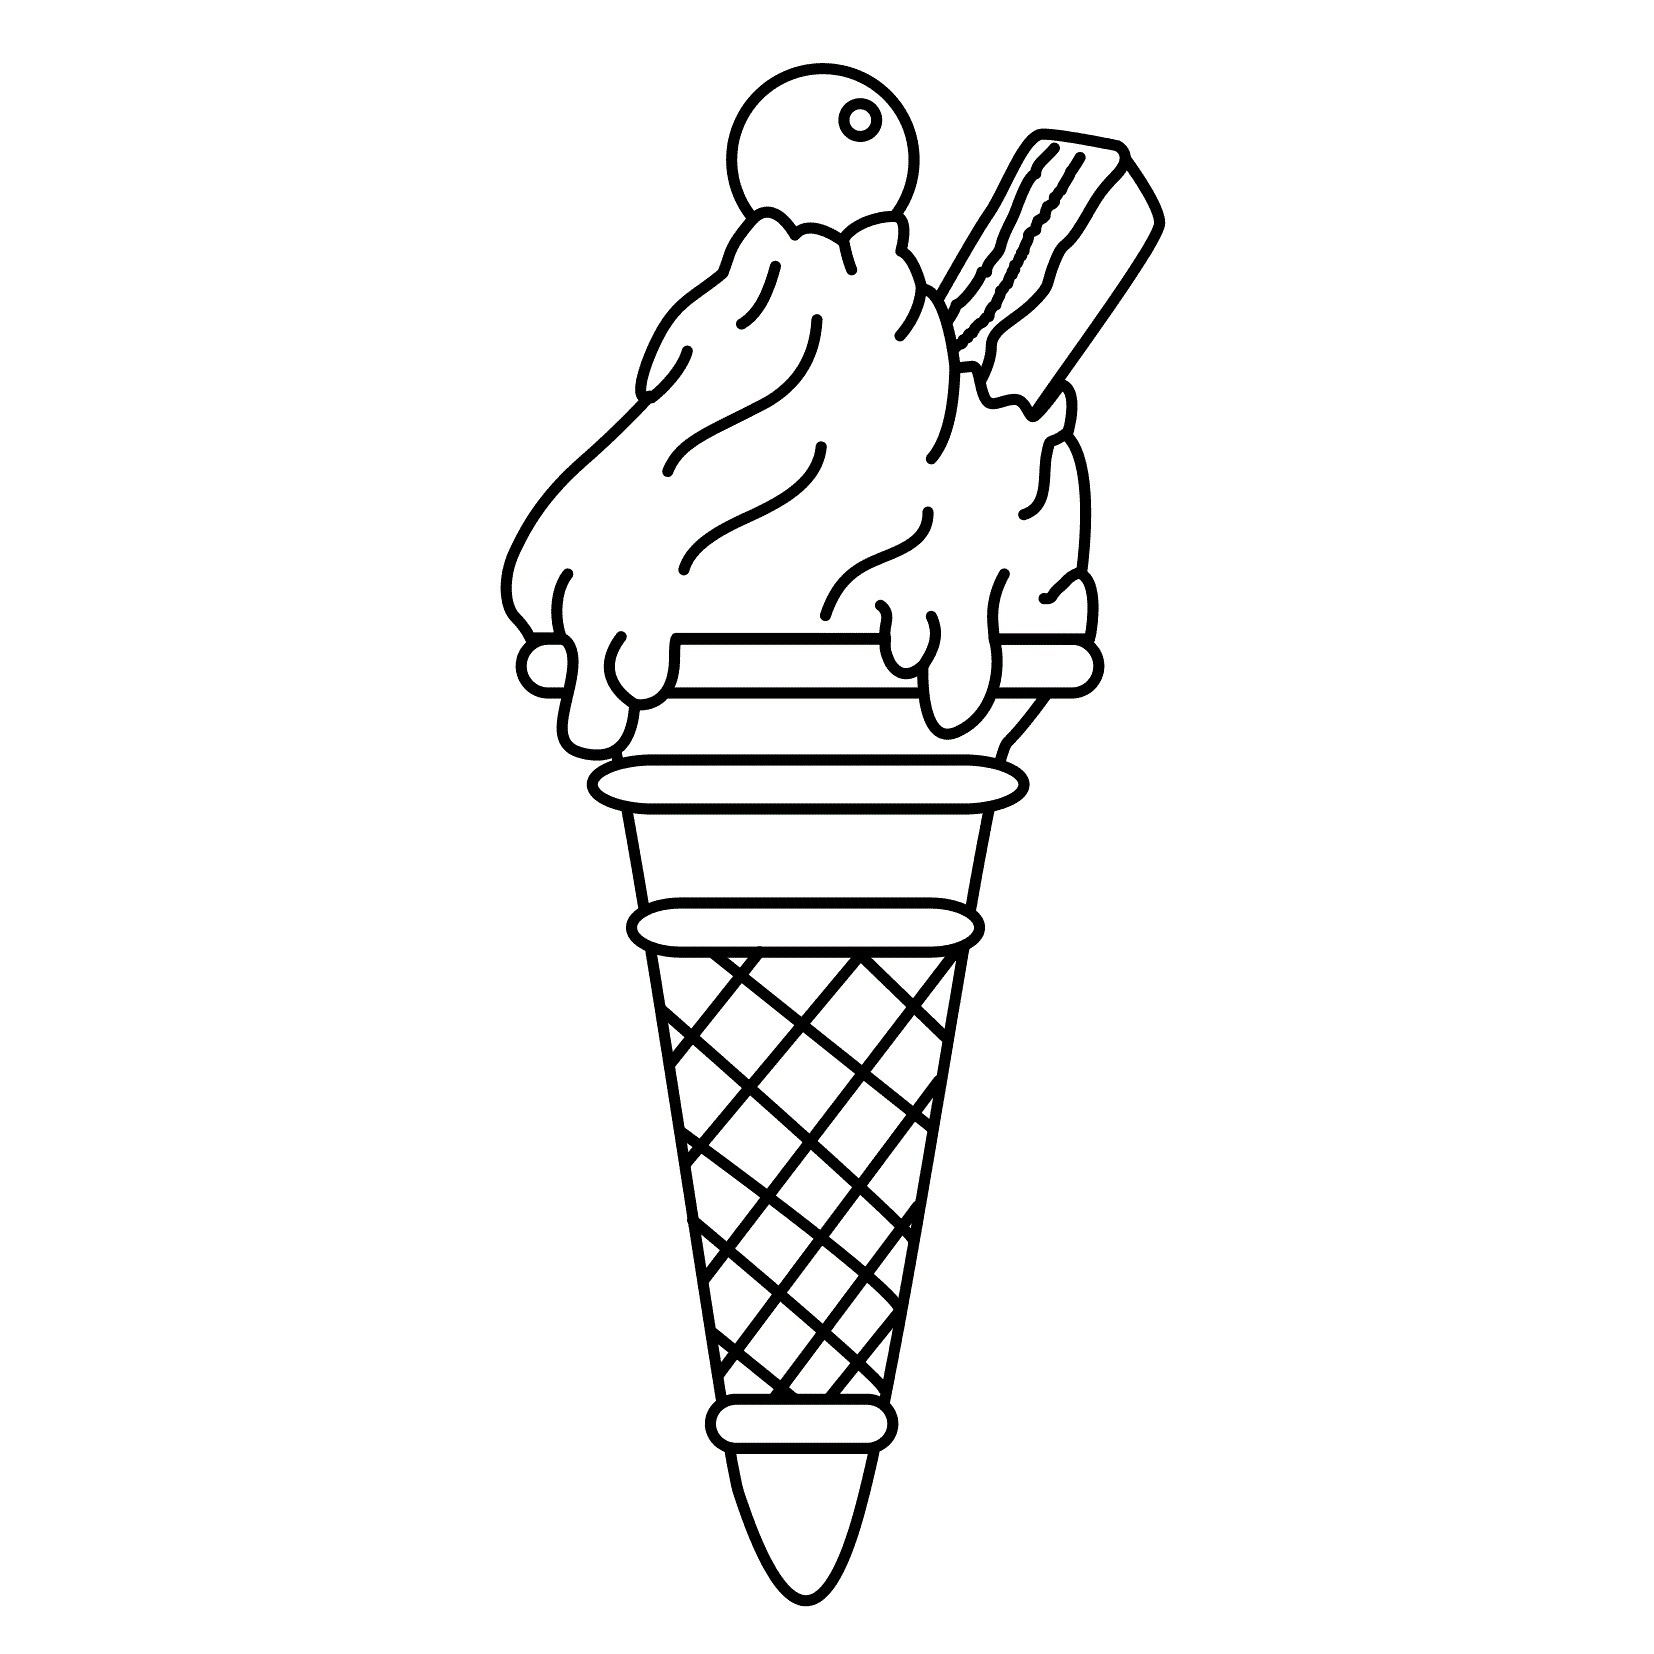 Free Printable Ice Cream Coloring Pages For Kids - Ice Cream Cone Template Free Printable